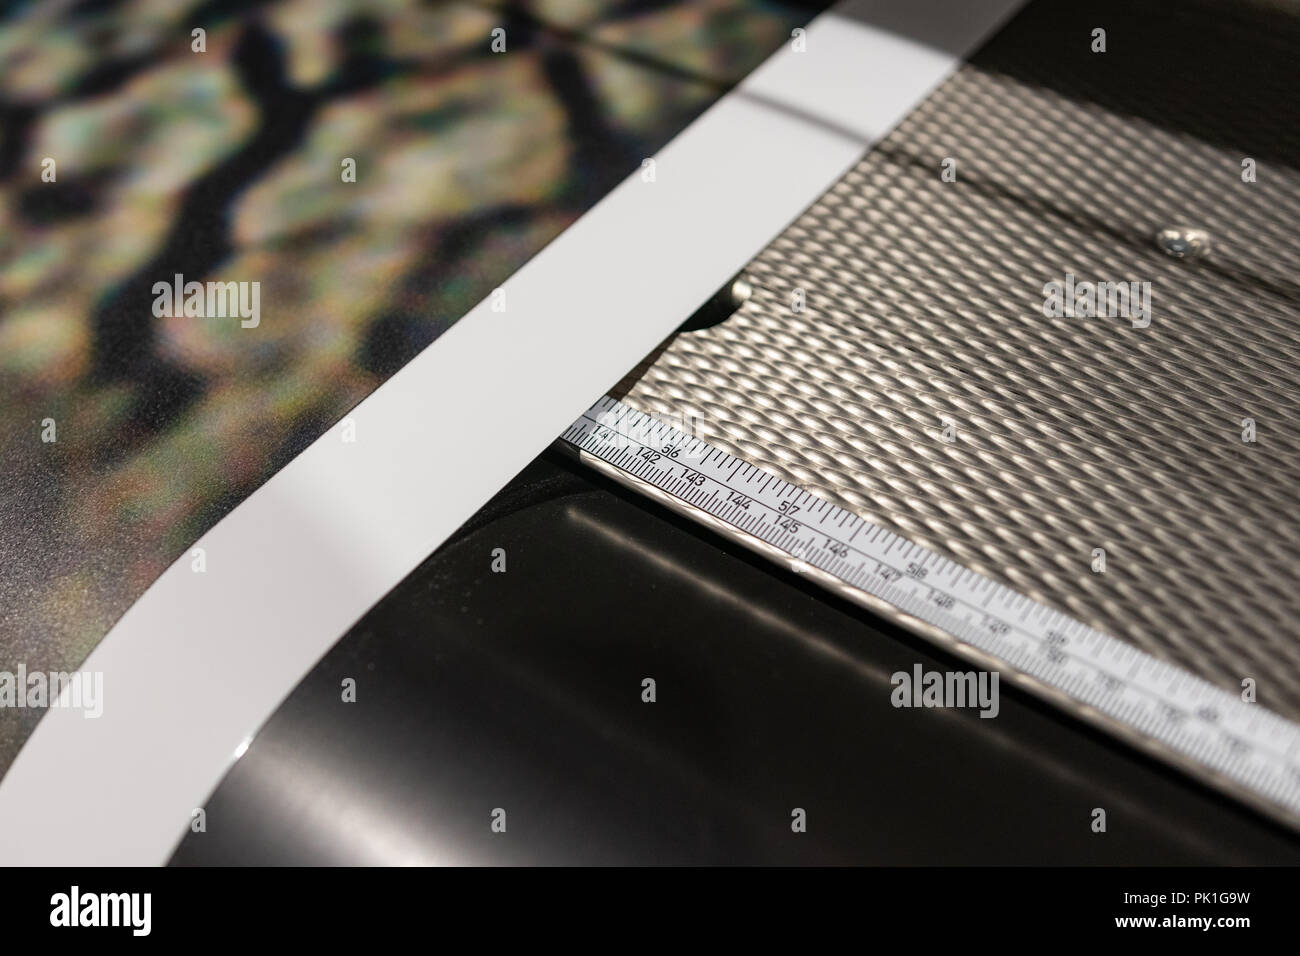 Professional printing facility, details of paper feed and ruler for precision cuts. - Stock Image